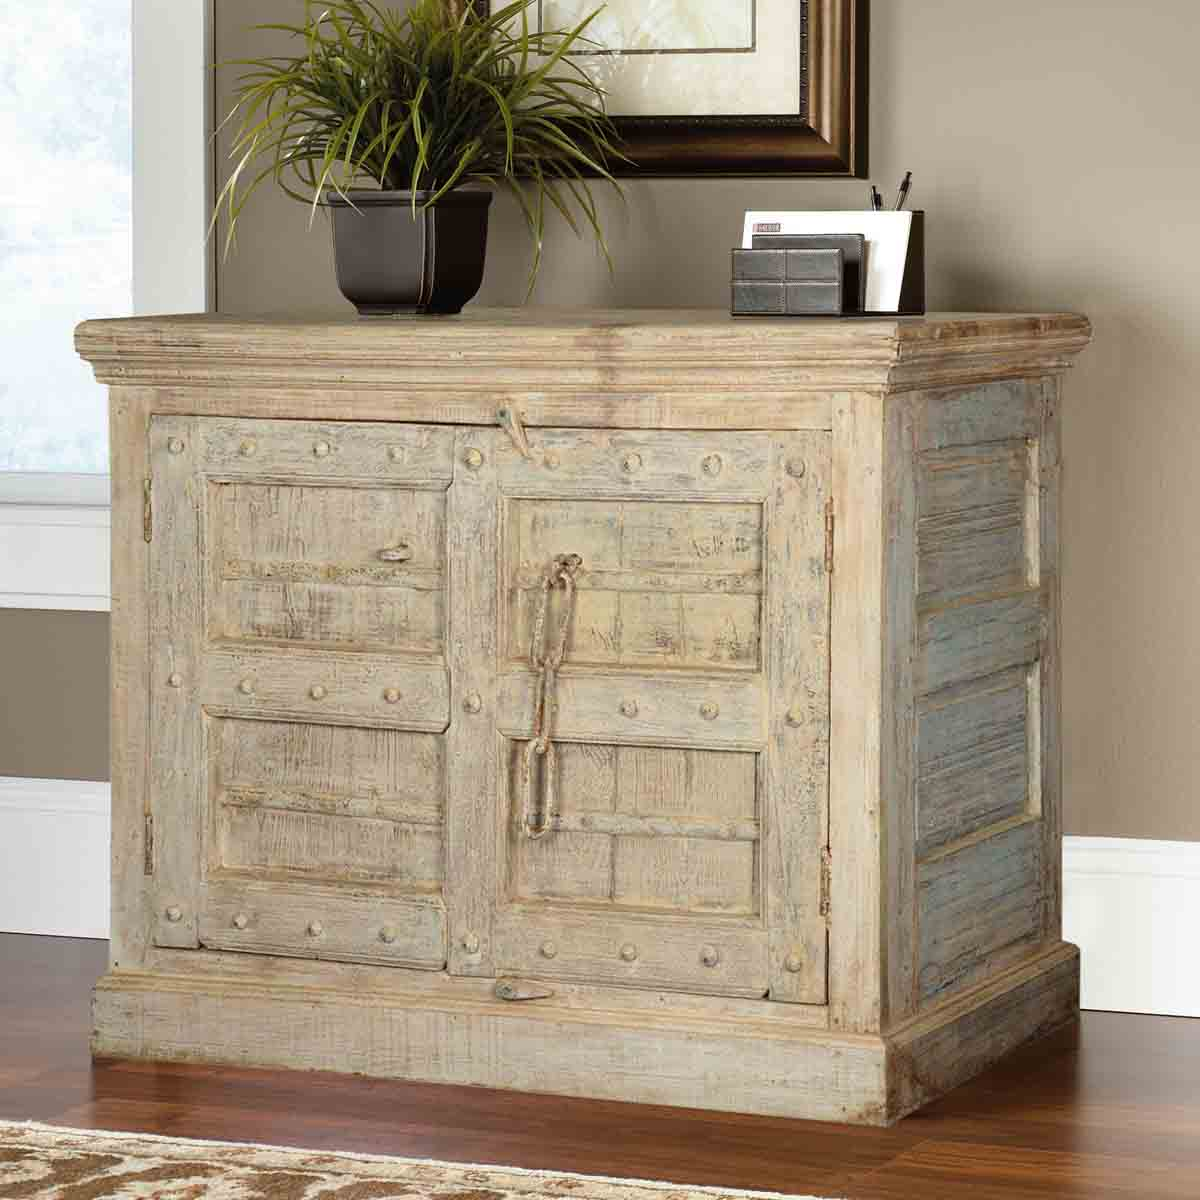 Maria winter reclaimed wood door buffet storage cabinet